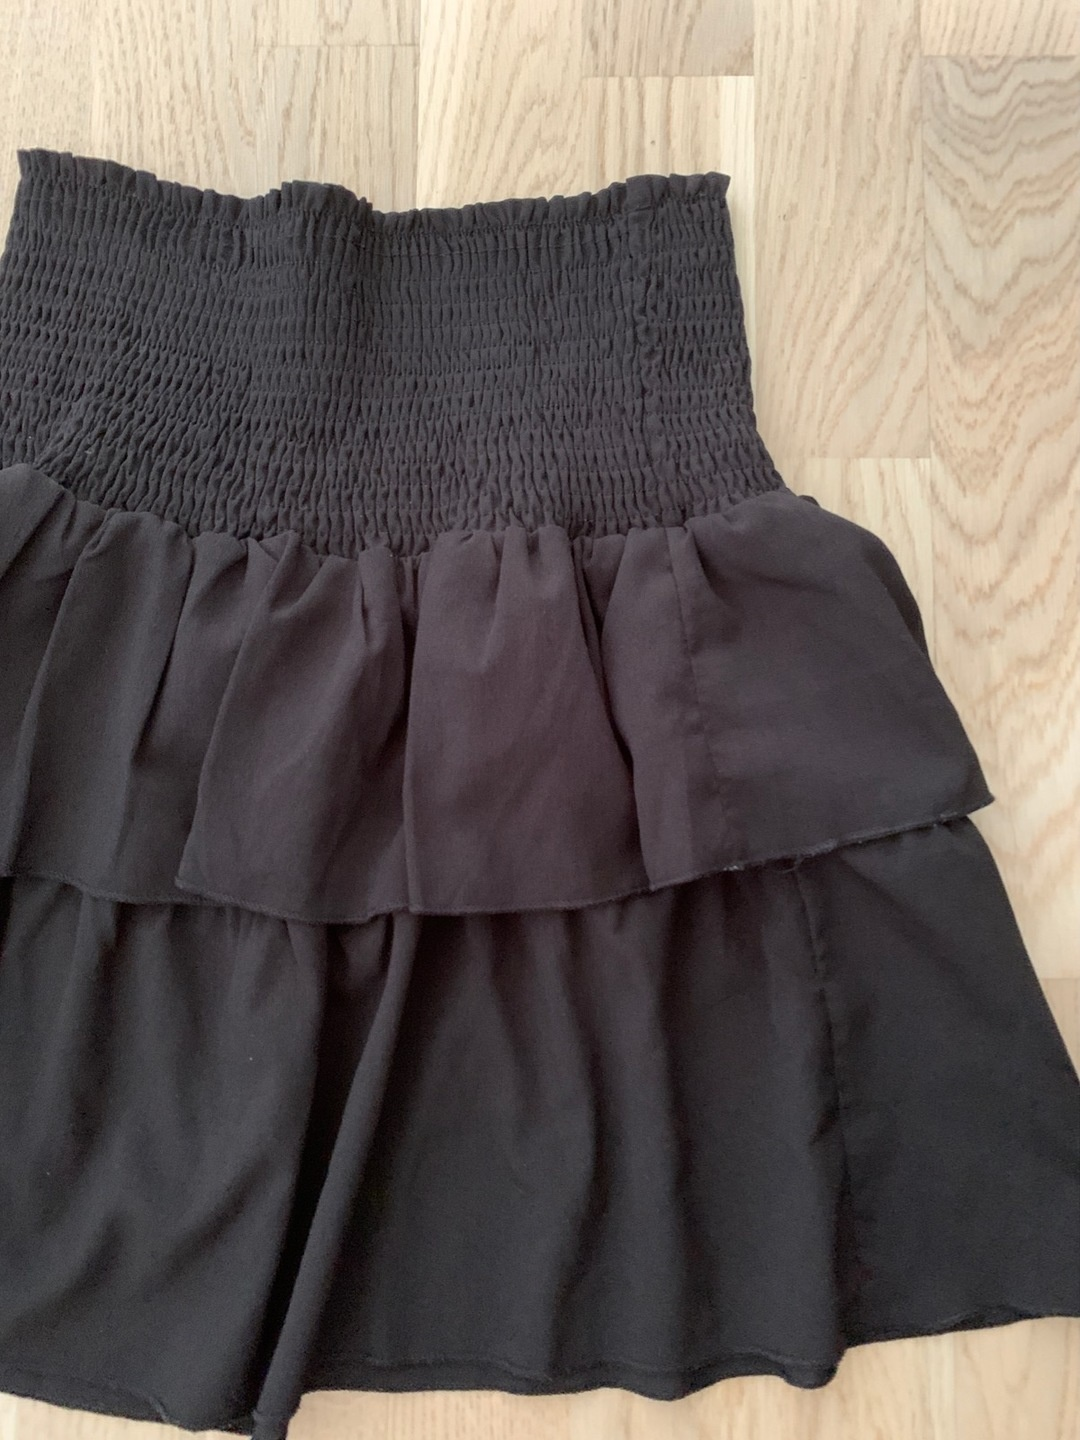 Women's skirts - PROJECT UNKOWN photo 3